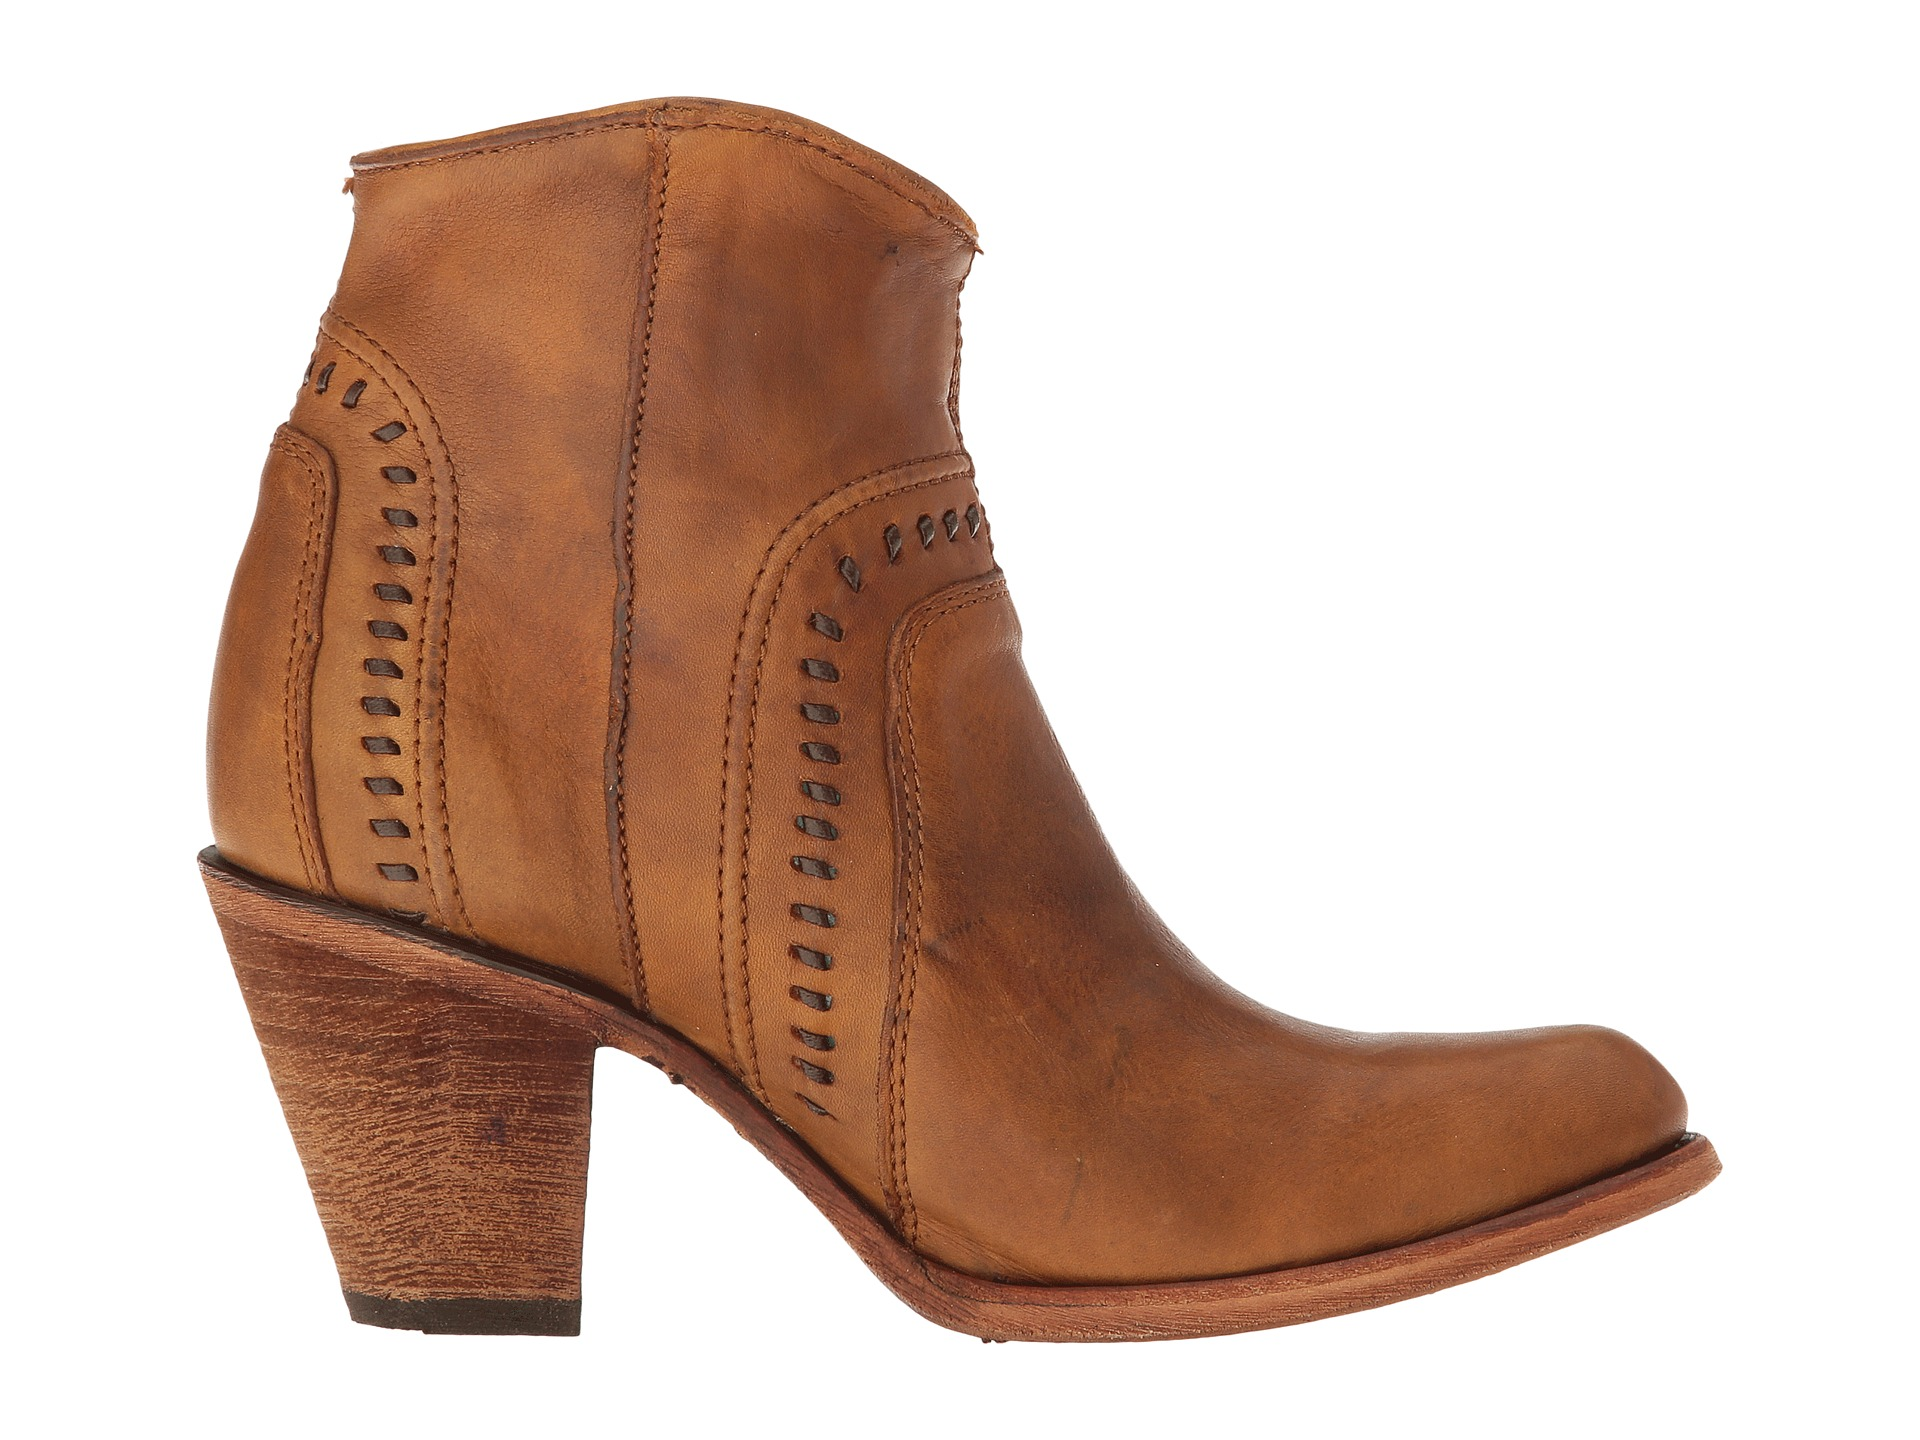 corral boots c2905 at zappos